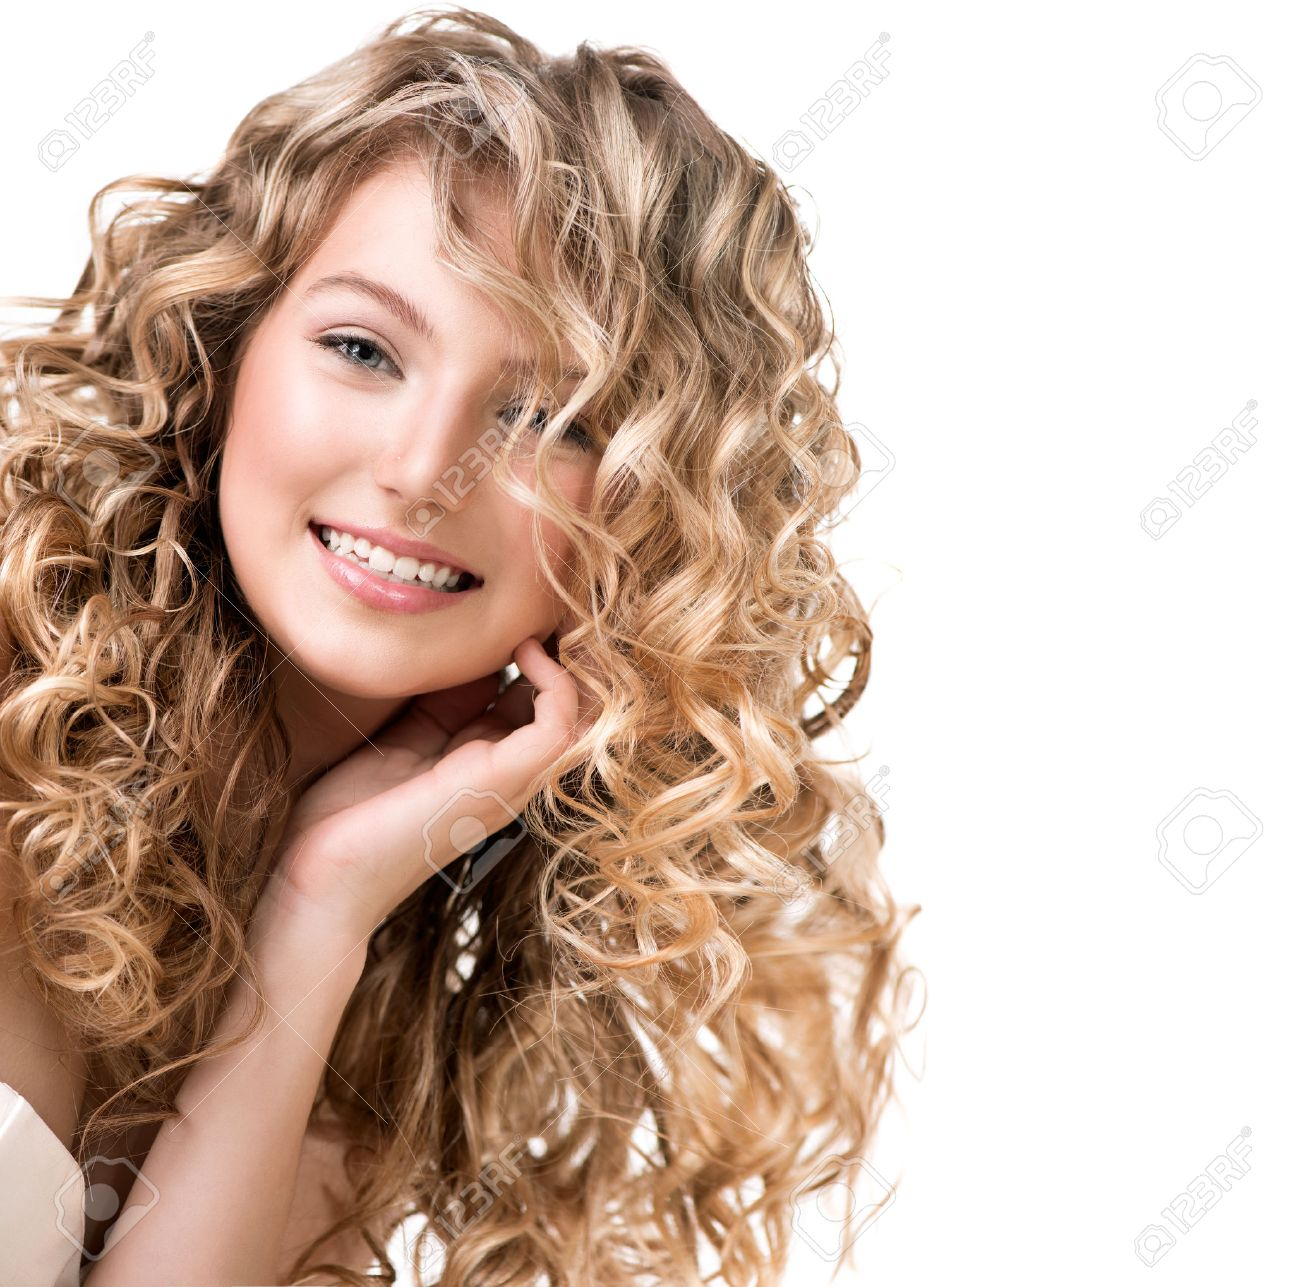 Beauty Girl With Blonde Curly Hair Long Permed Hair Stock Photo